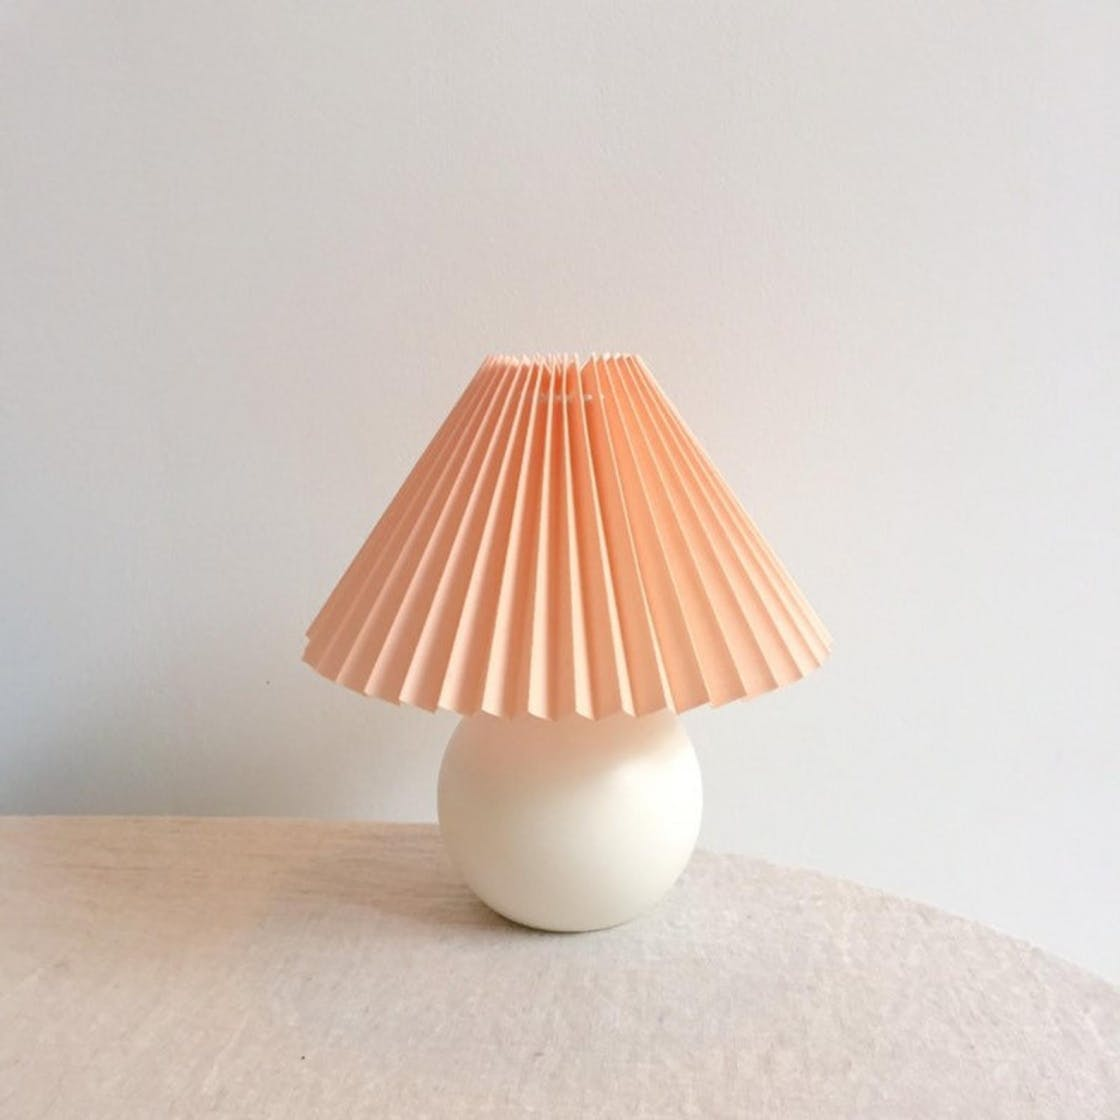 7 Pleated Lampshades To Give Your Home, Pleated Lamp Shades For Table Lamps Uk